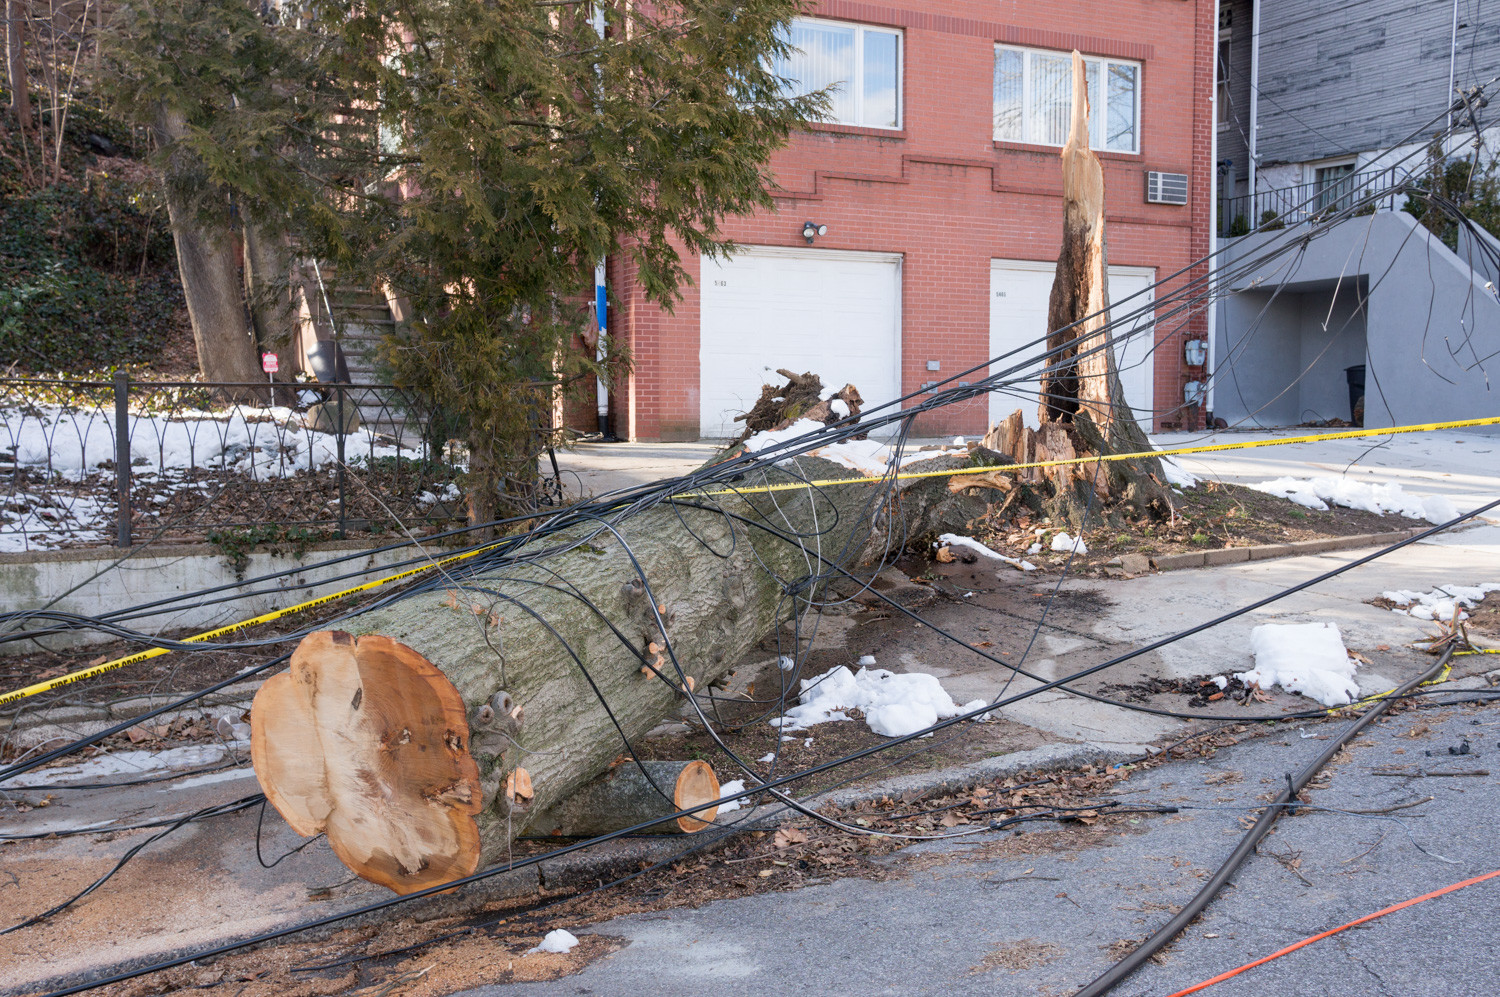 The remains of a massive tree lie on the ground after a fierce winter storm ripped through its trunk March 2, damaging power lines on Sylvan Avenue between West 256th and West 254th streets. It caused prolonged outages that were still not resolved as of last Friday.